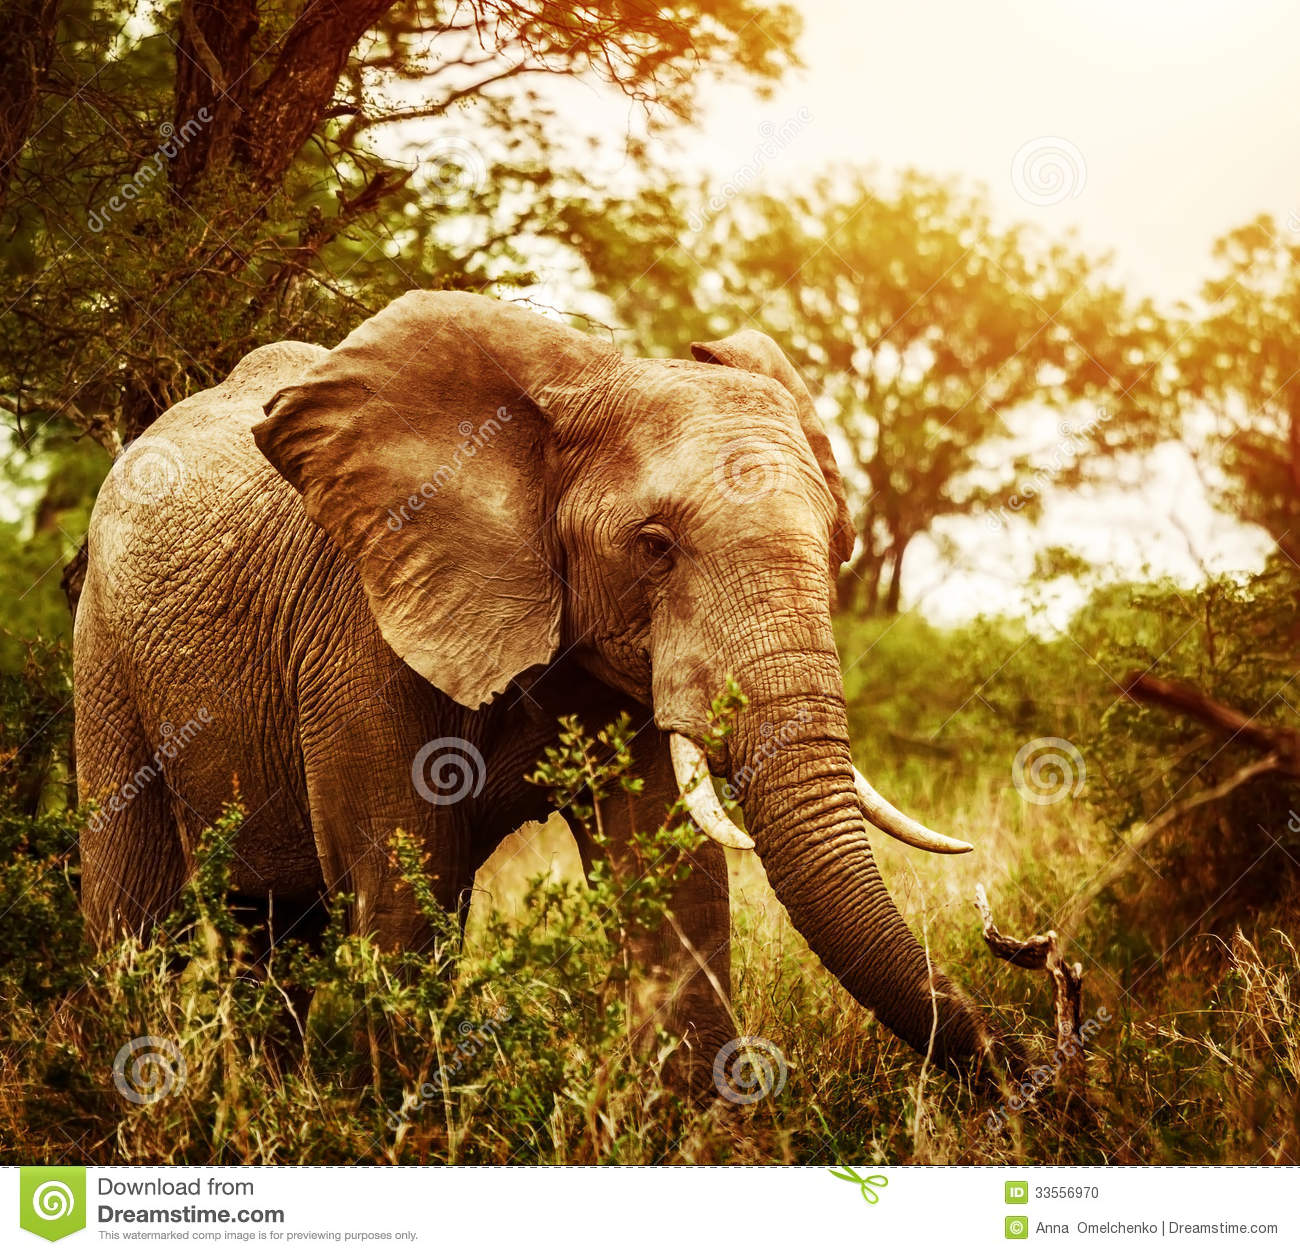 Om Animation Wallpaper Huge Elephant Outdoors Stock Photo Image 33556970